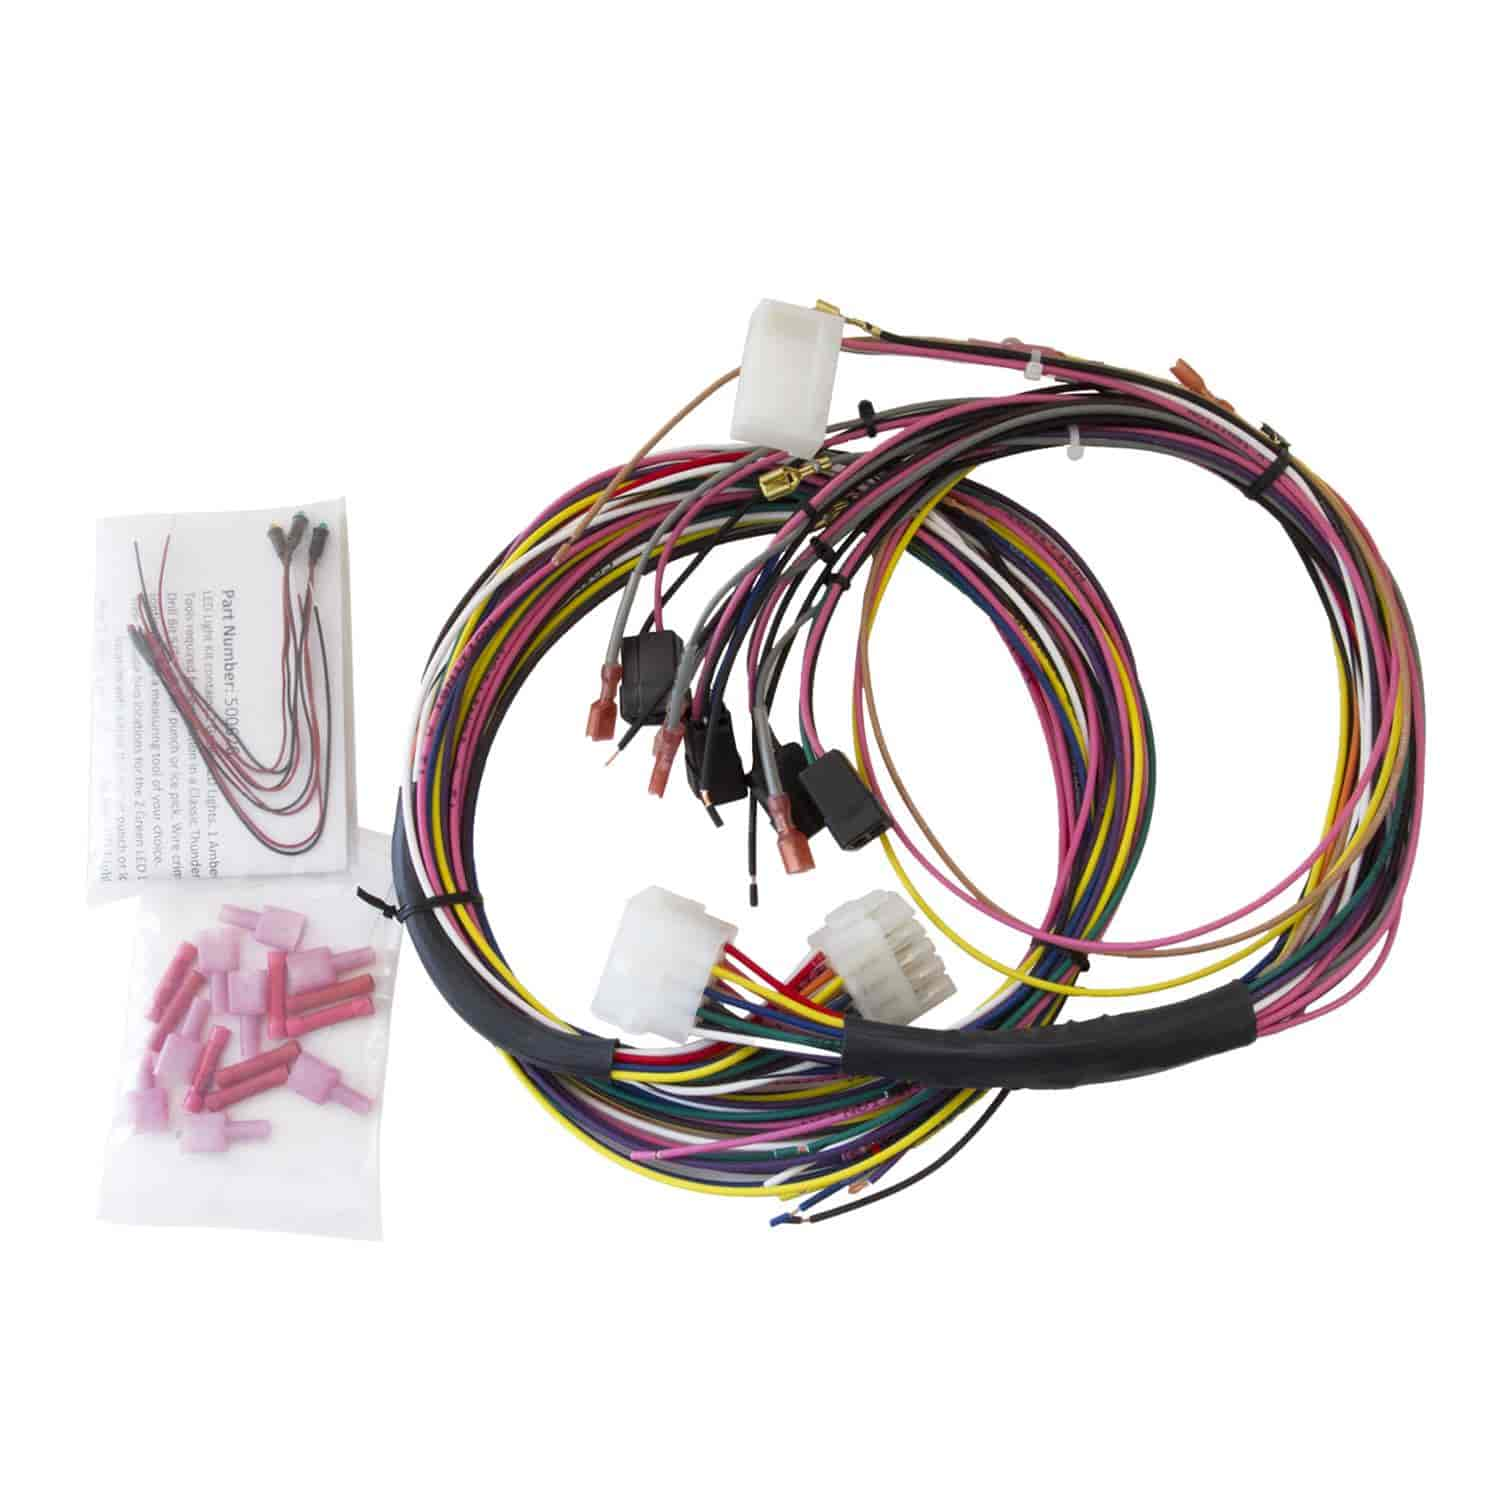 105 2198 auto meter 2198 replacement wiring harness universal jegs VW Wiring Harness Kits at soozxer.org